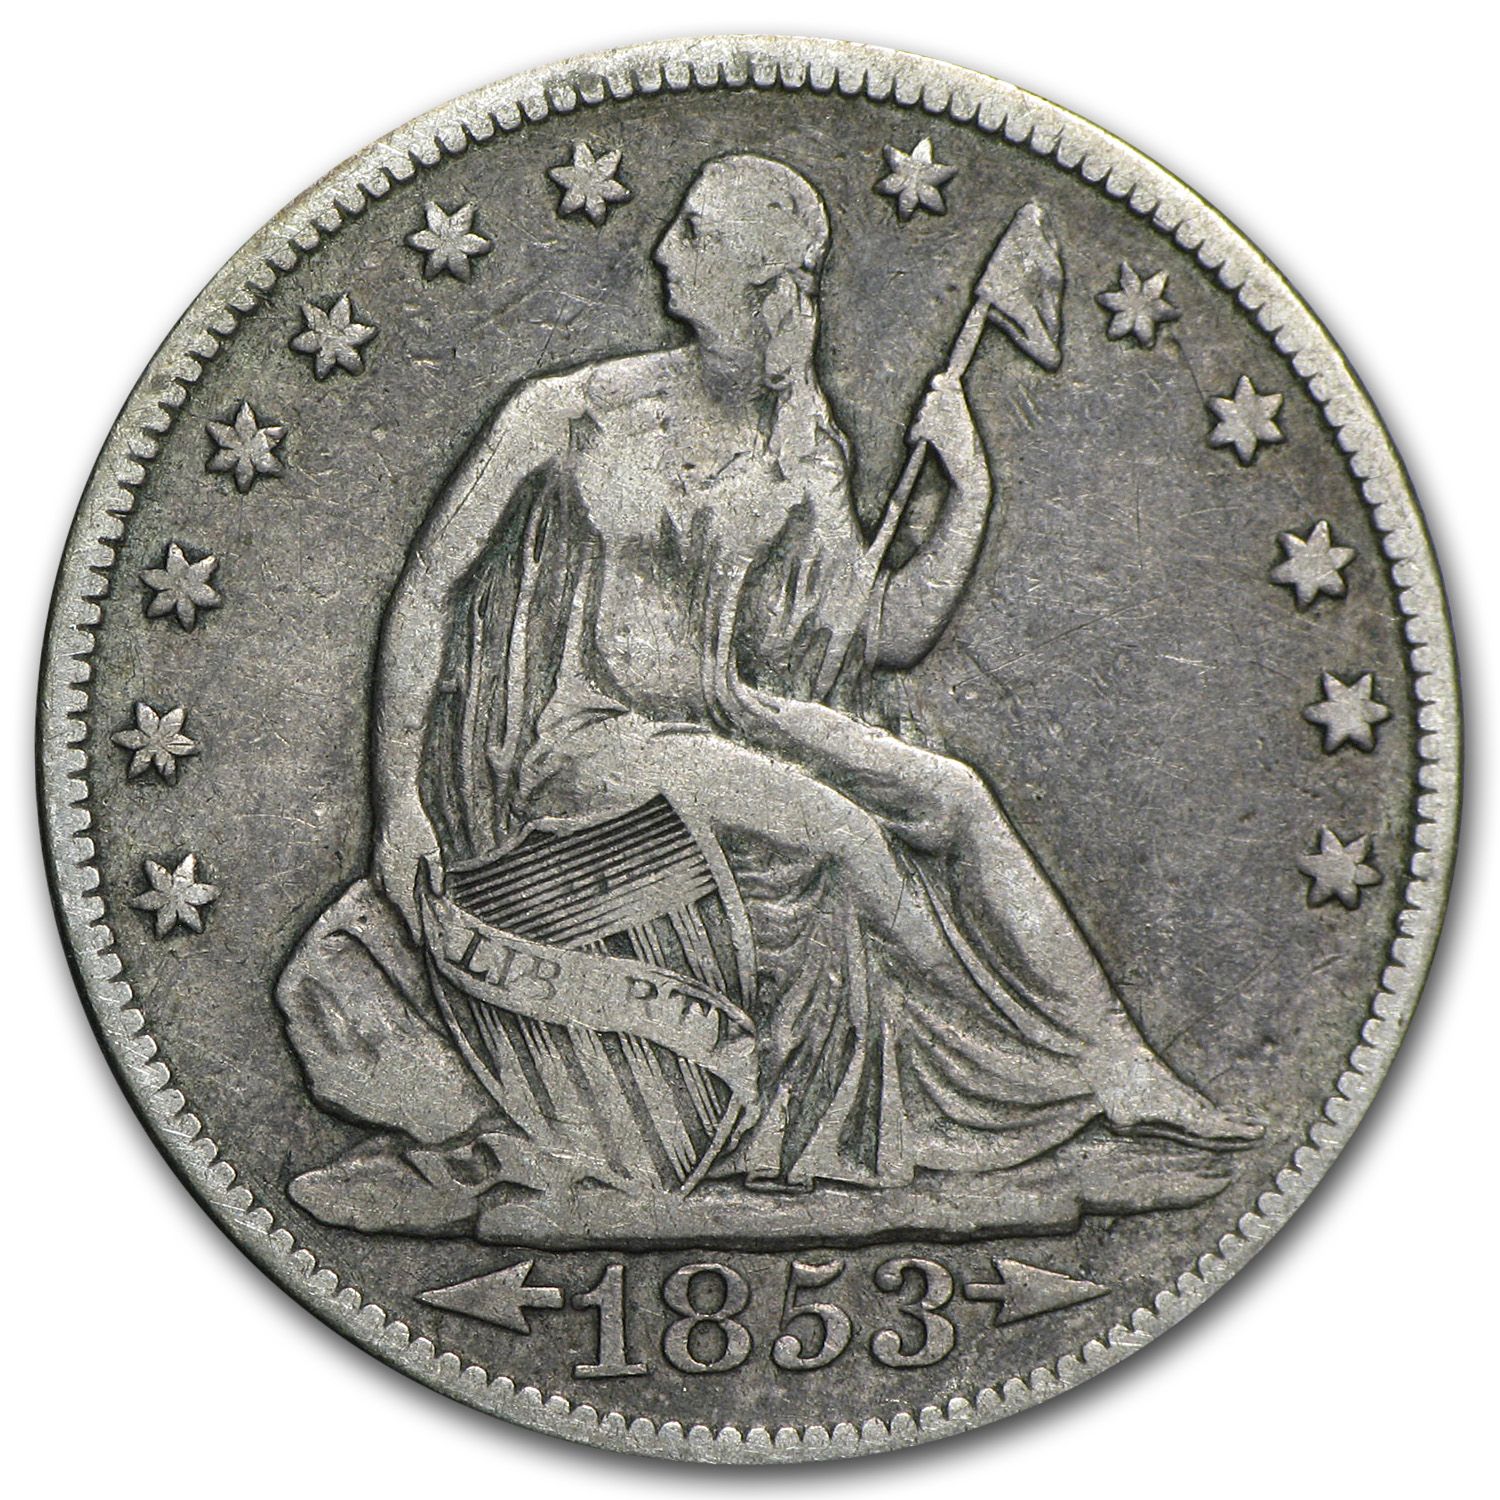 1853 Liberty Seated Half Dollar w/Arrows & Rays VF